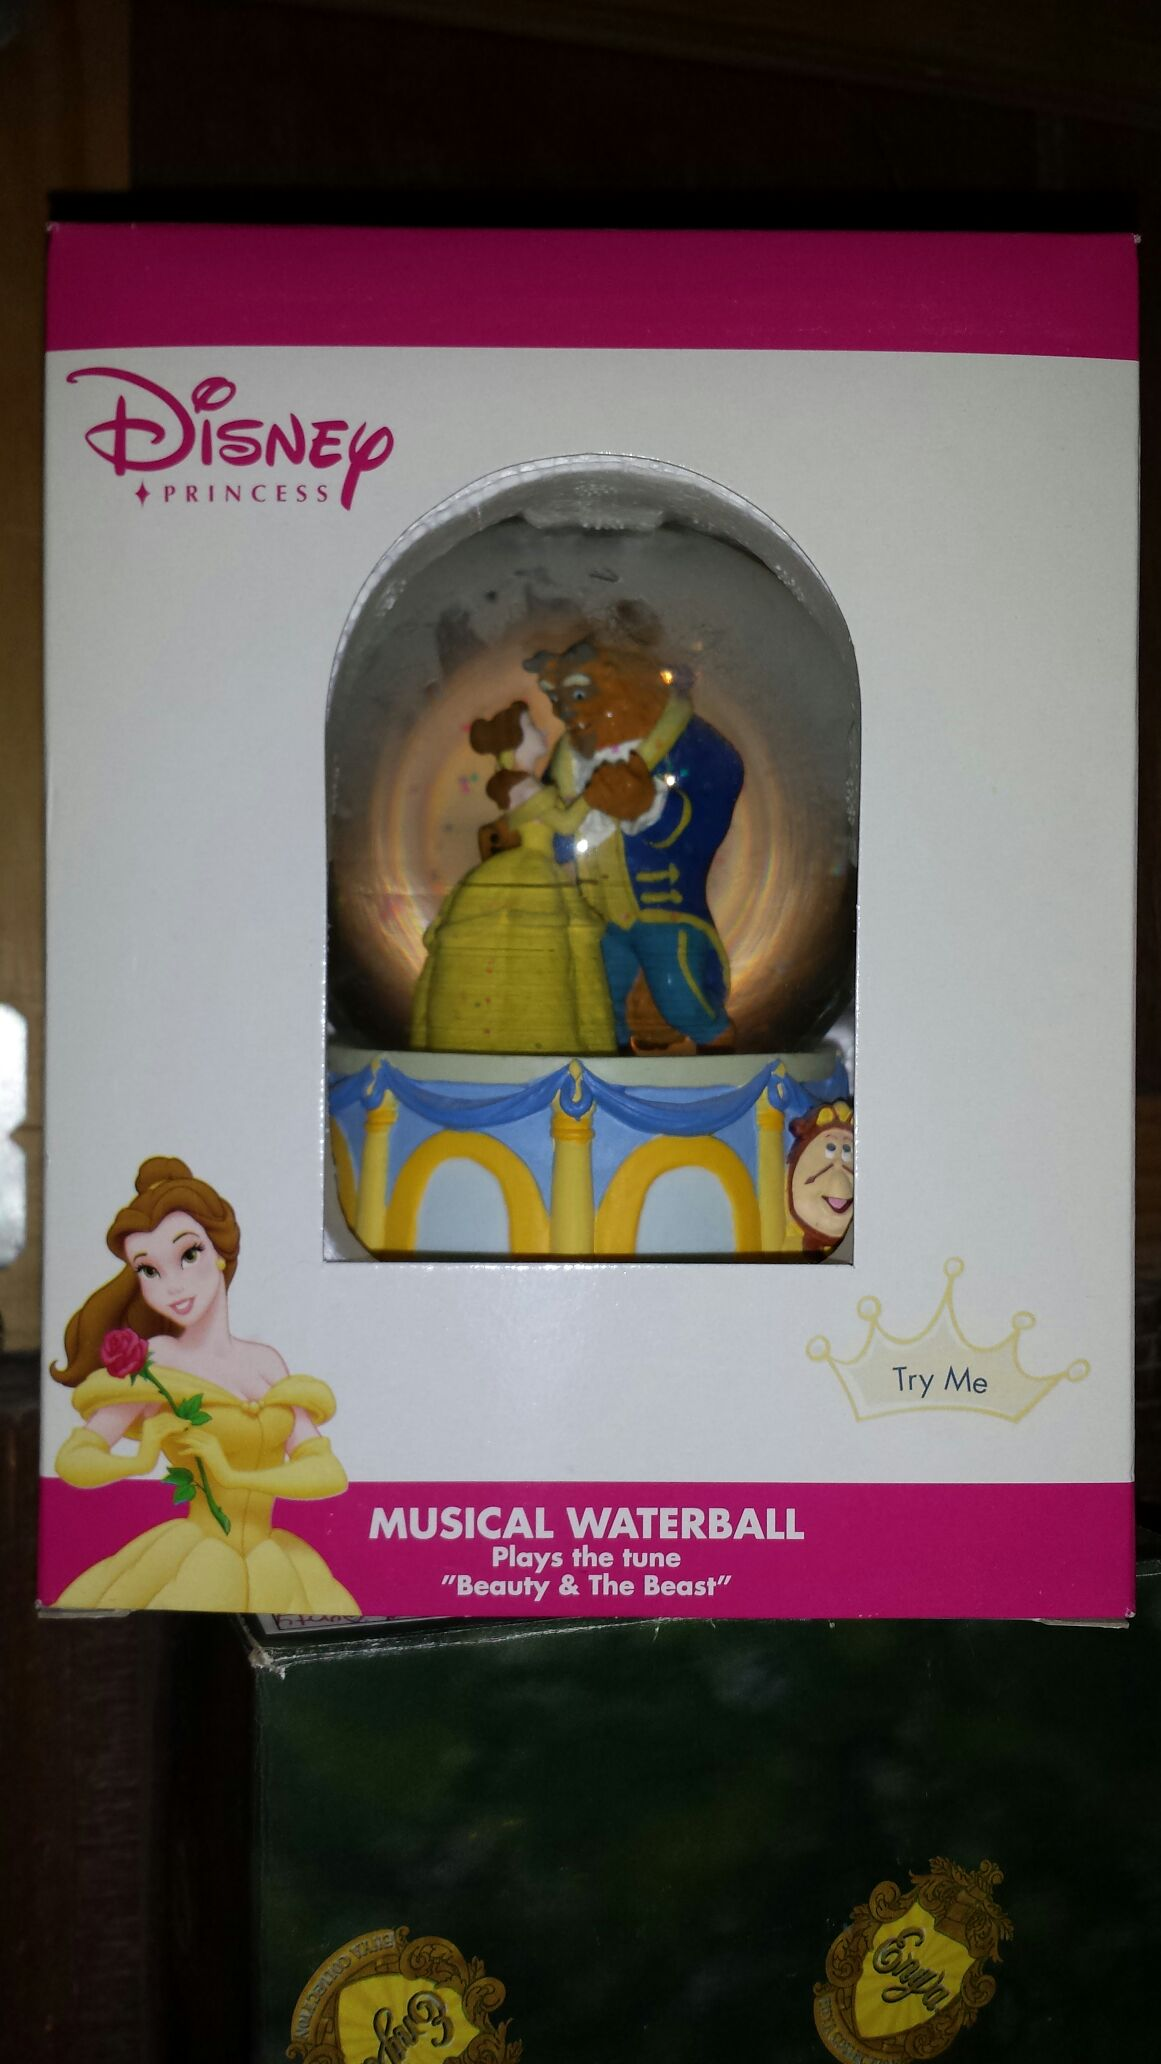 Beauty & The Beast Snowglobe (Disney Traditions / Enesco) front image (front cover)